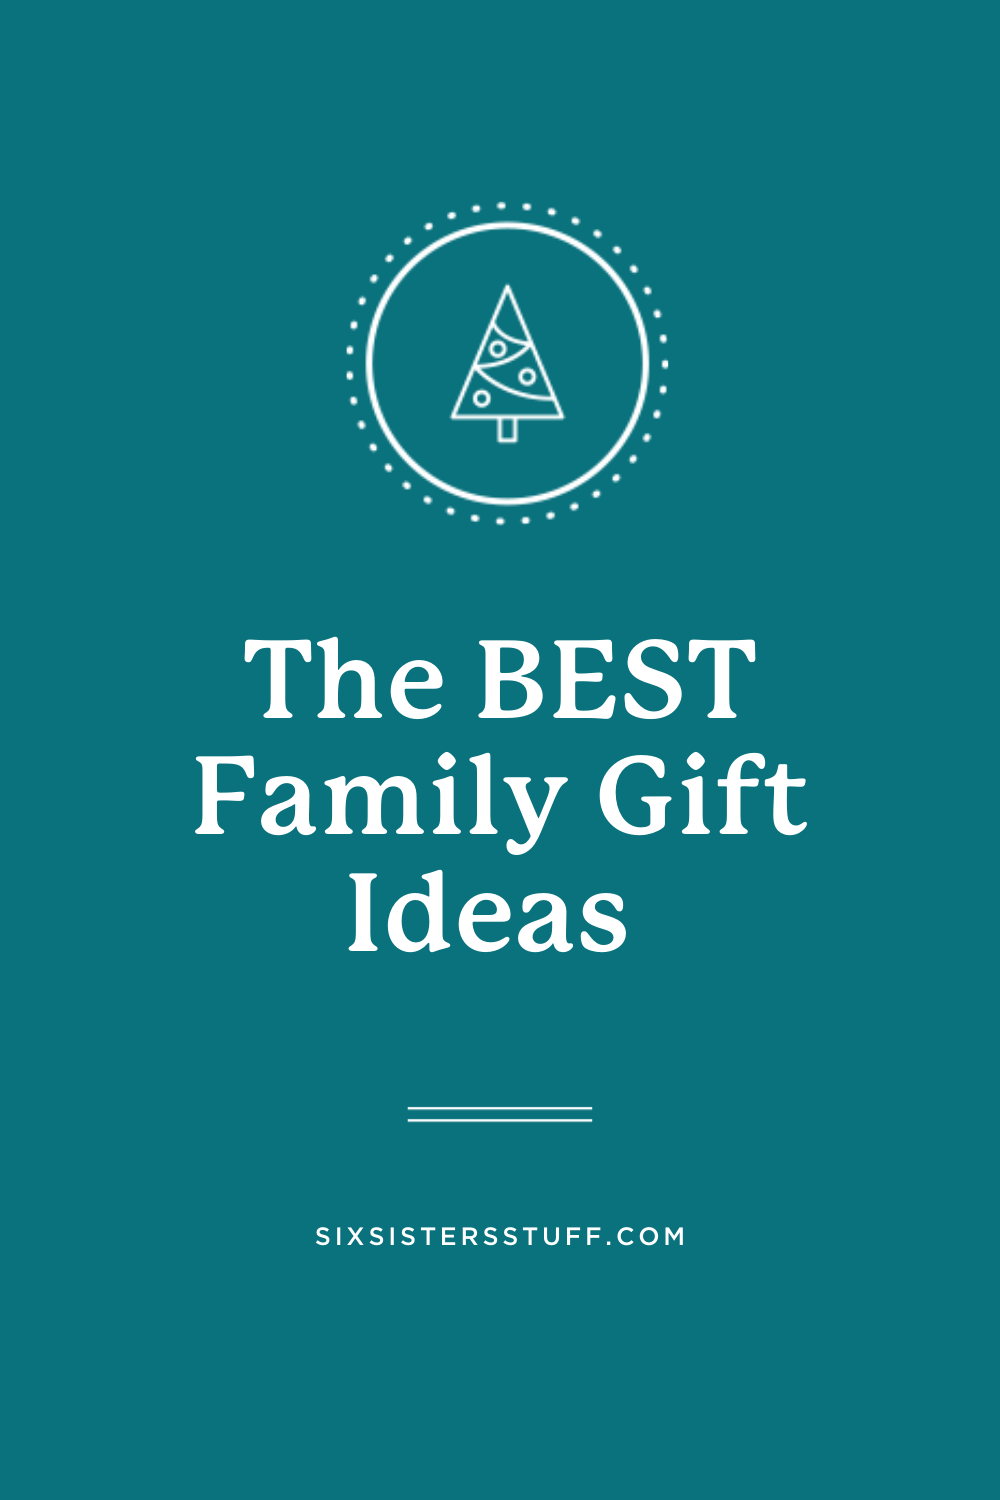 The BEST Family Gift Ideas